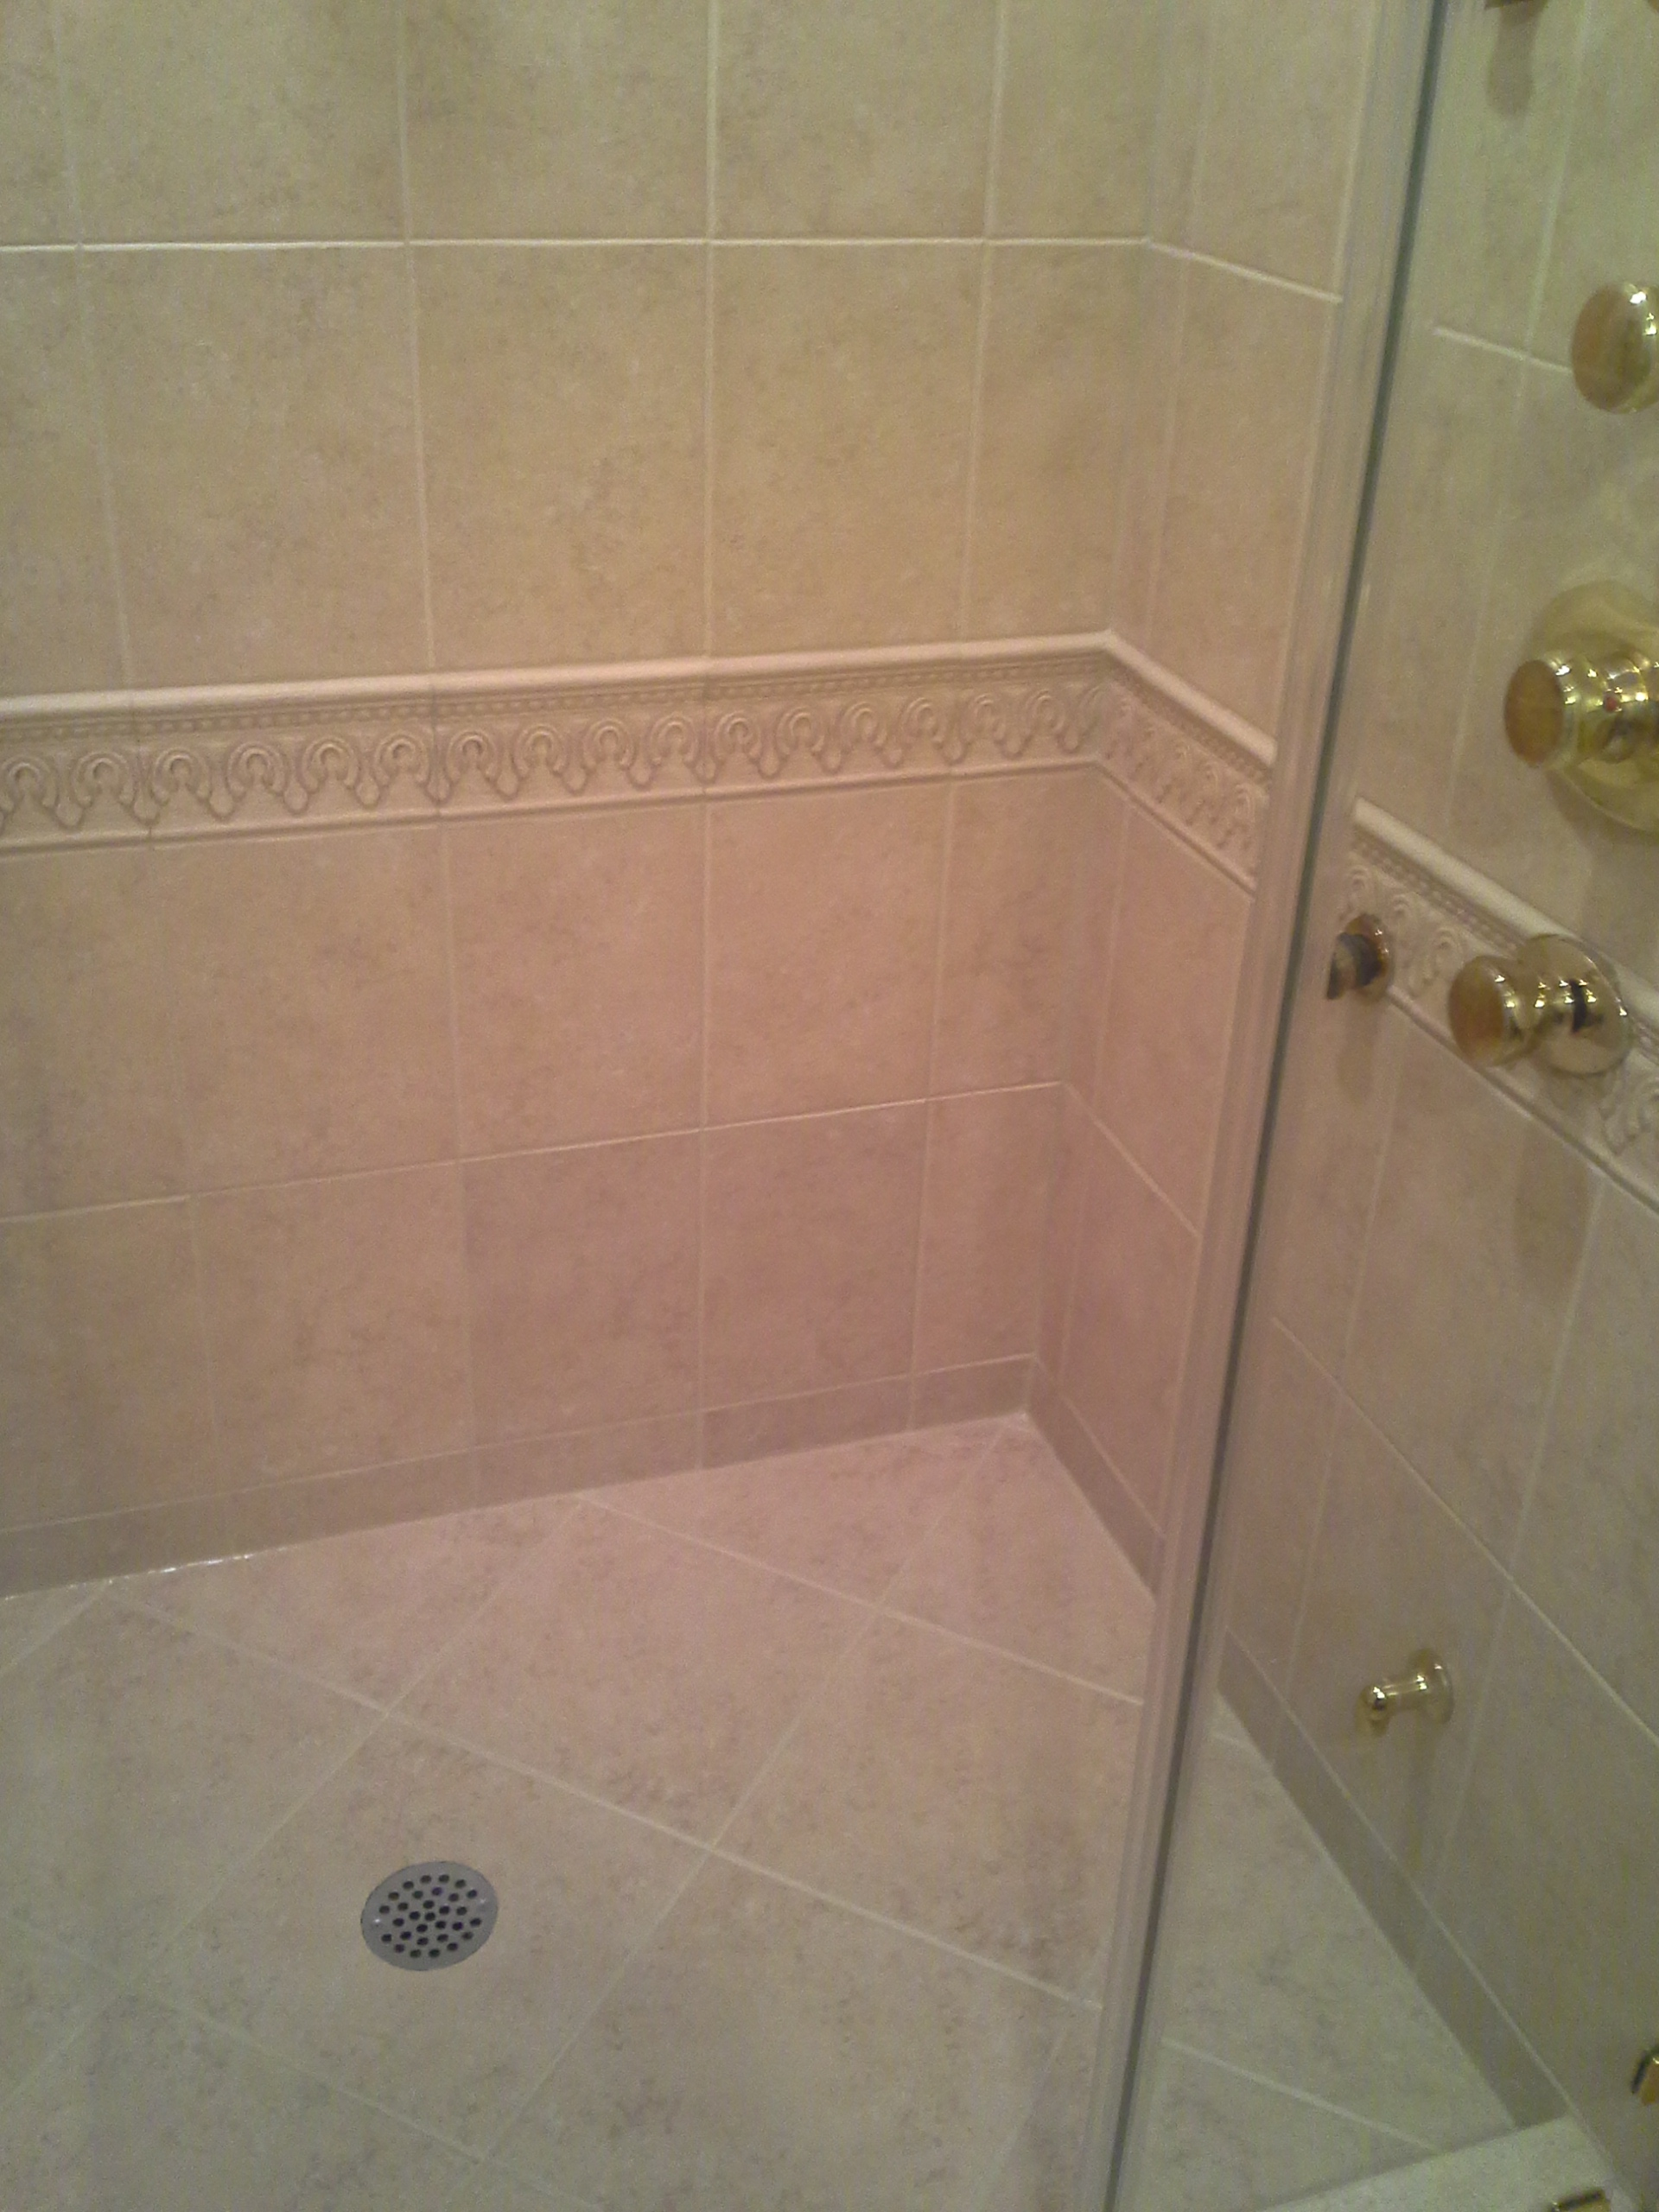 Moldy Shower Grout Caulk Amp Bathroom Grout Repair Vs Dirty